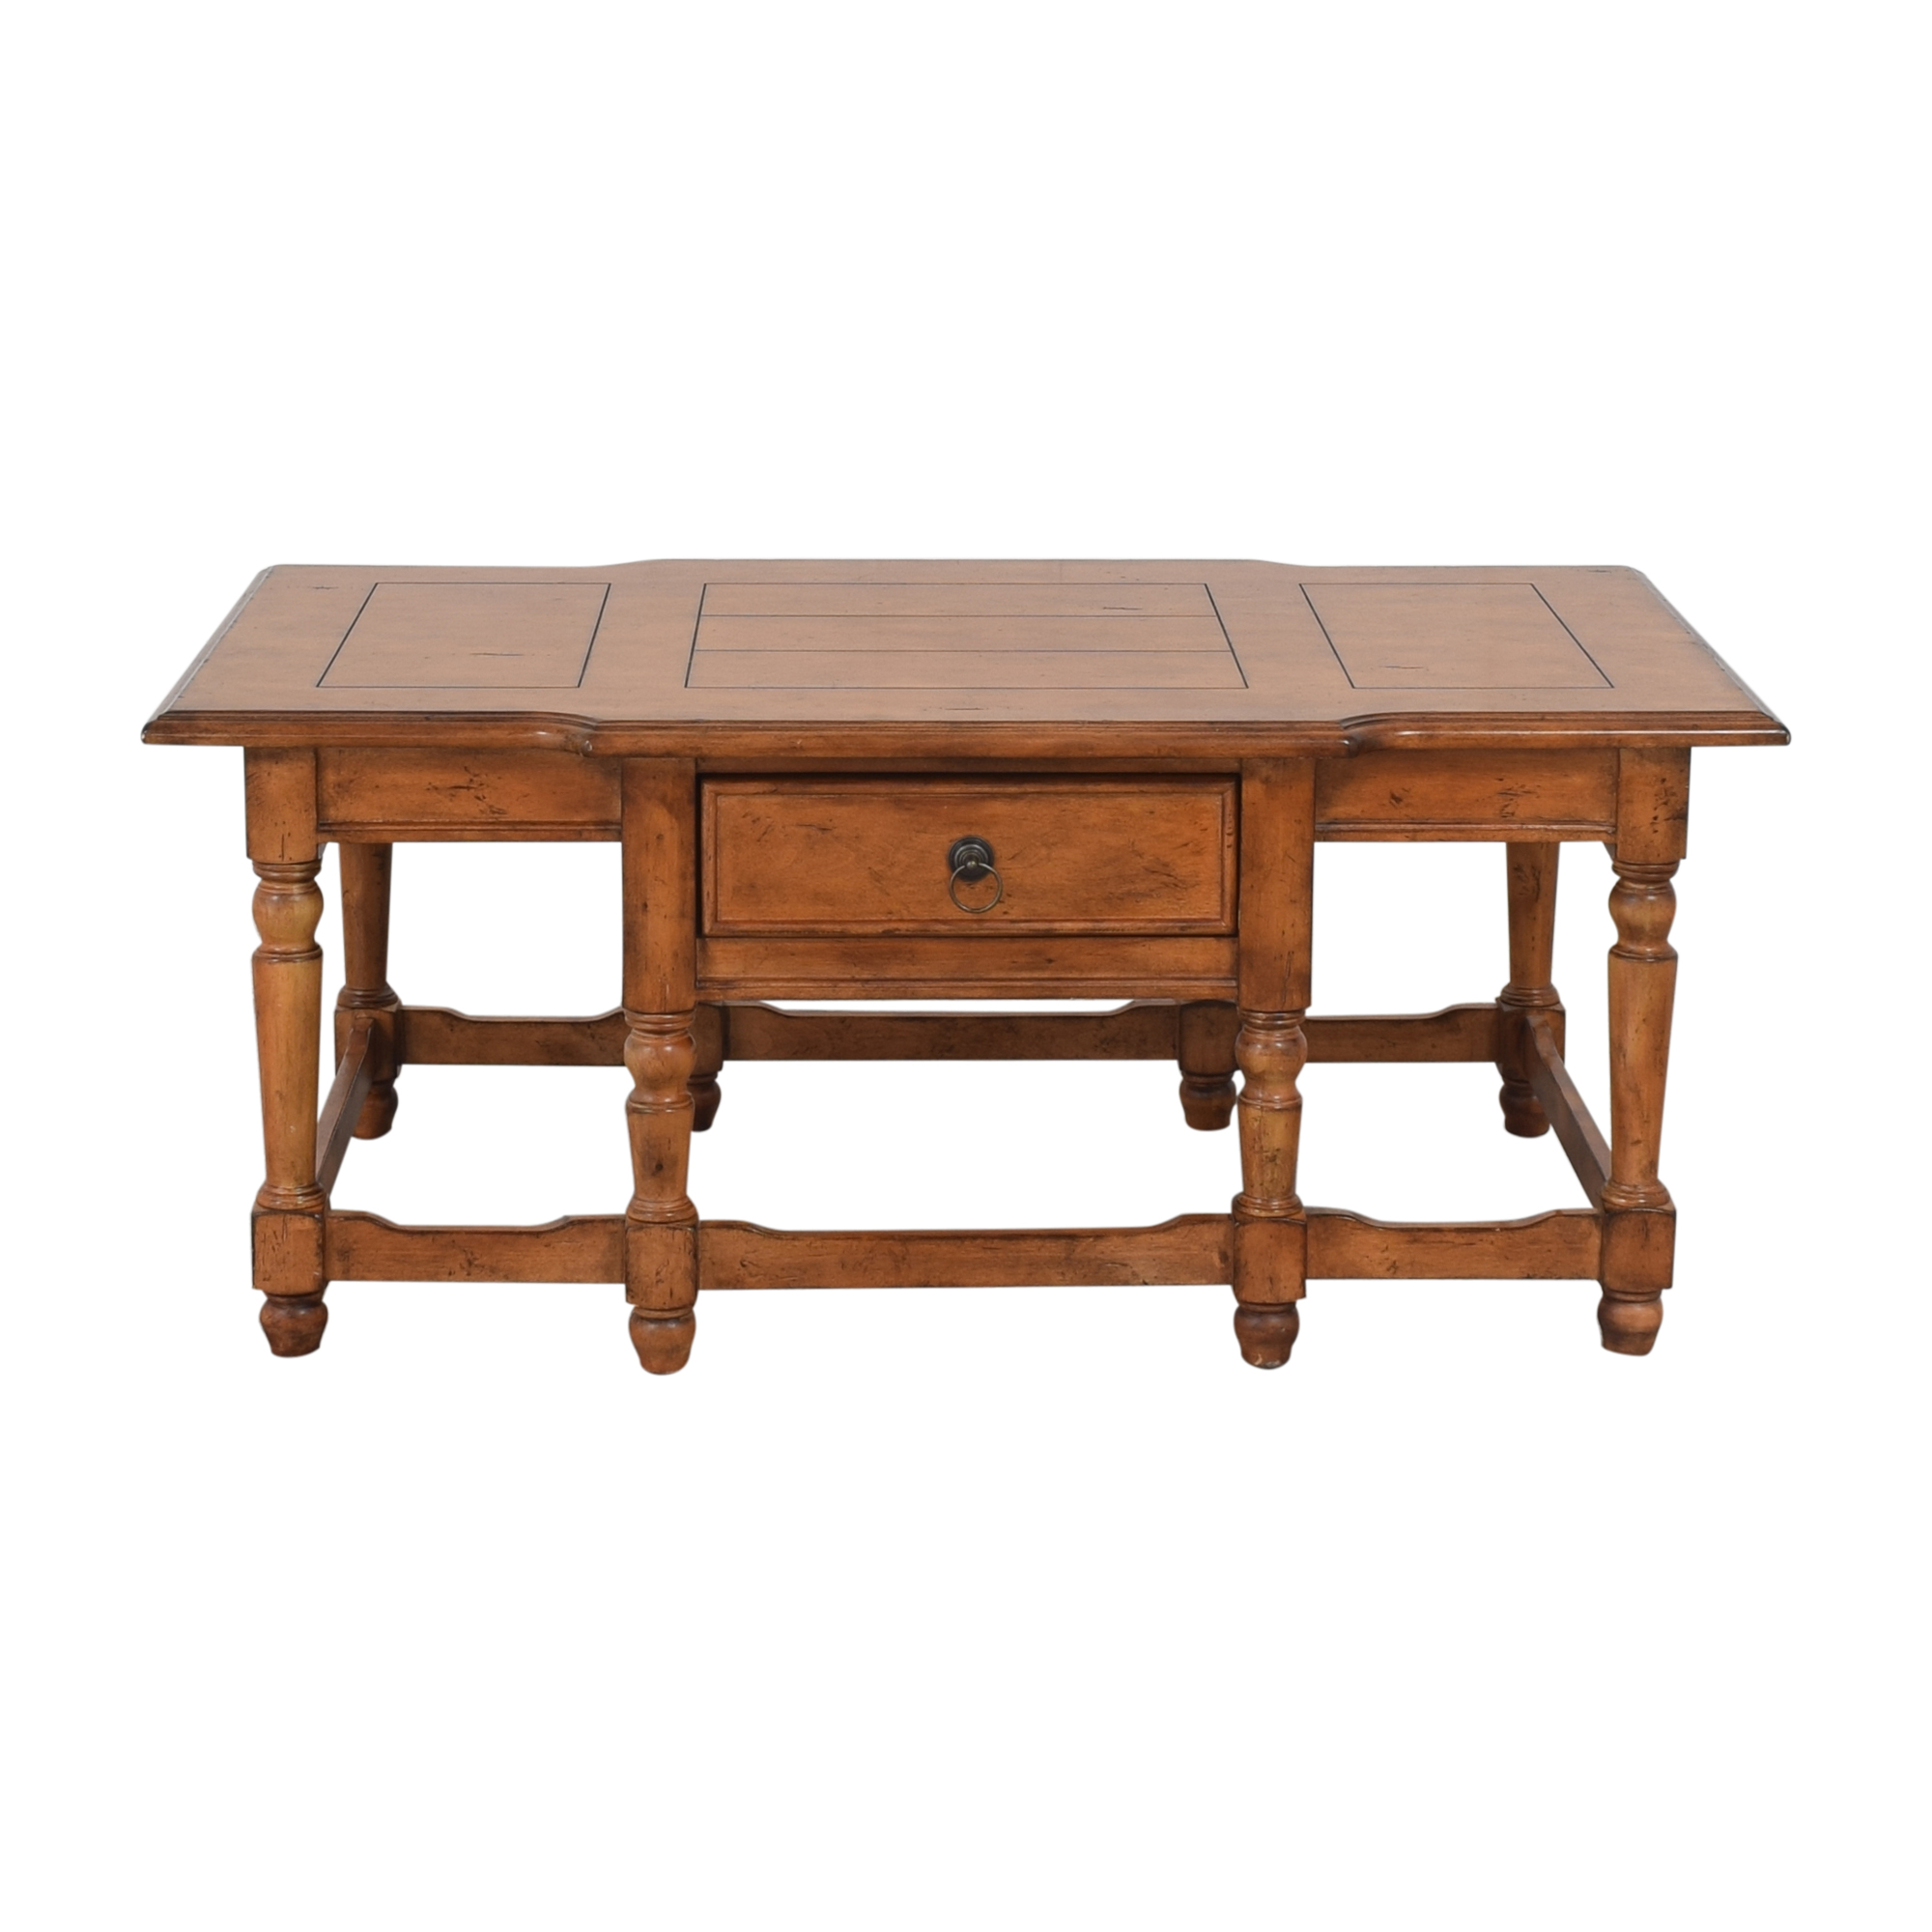 Coffee Table with Drawer dimensions